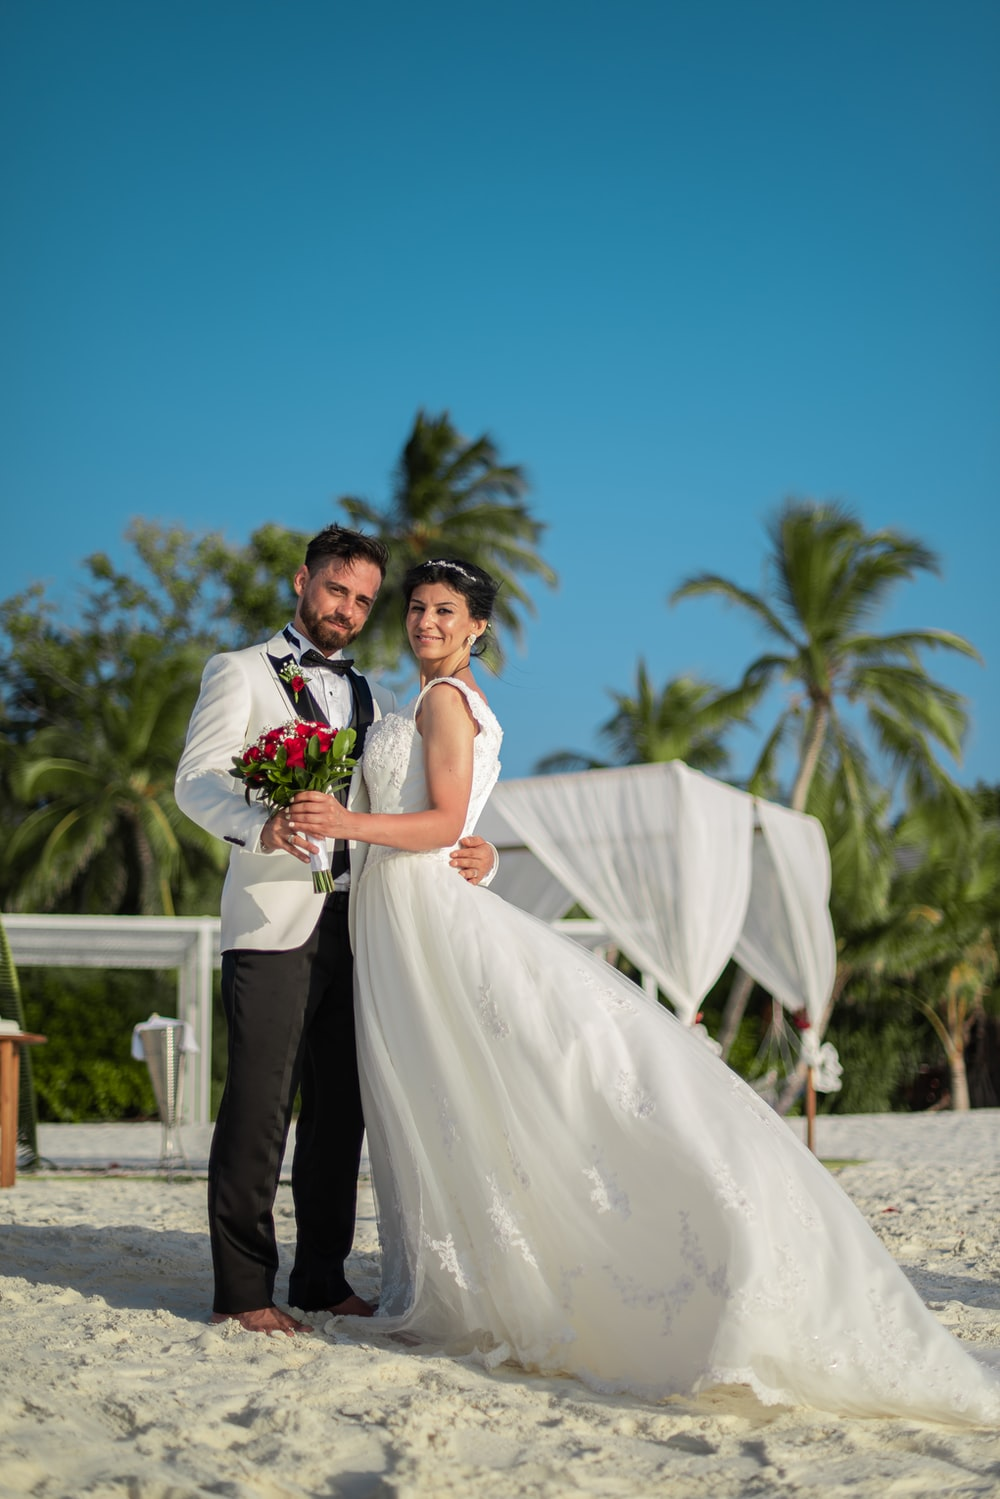 man in black suit and woman in white wedding dress standing on brown sand during daytime